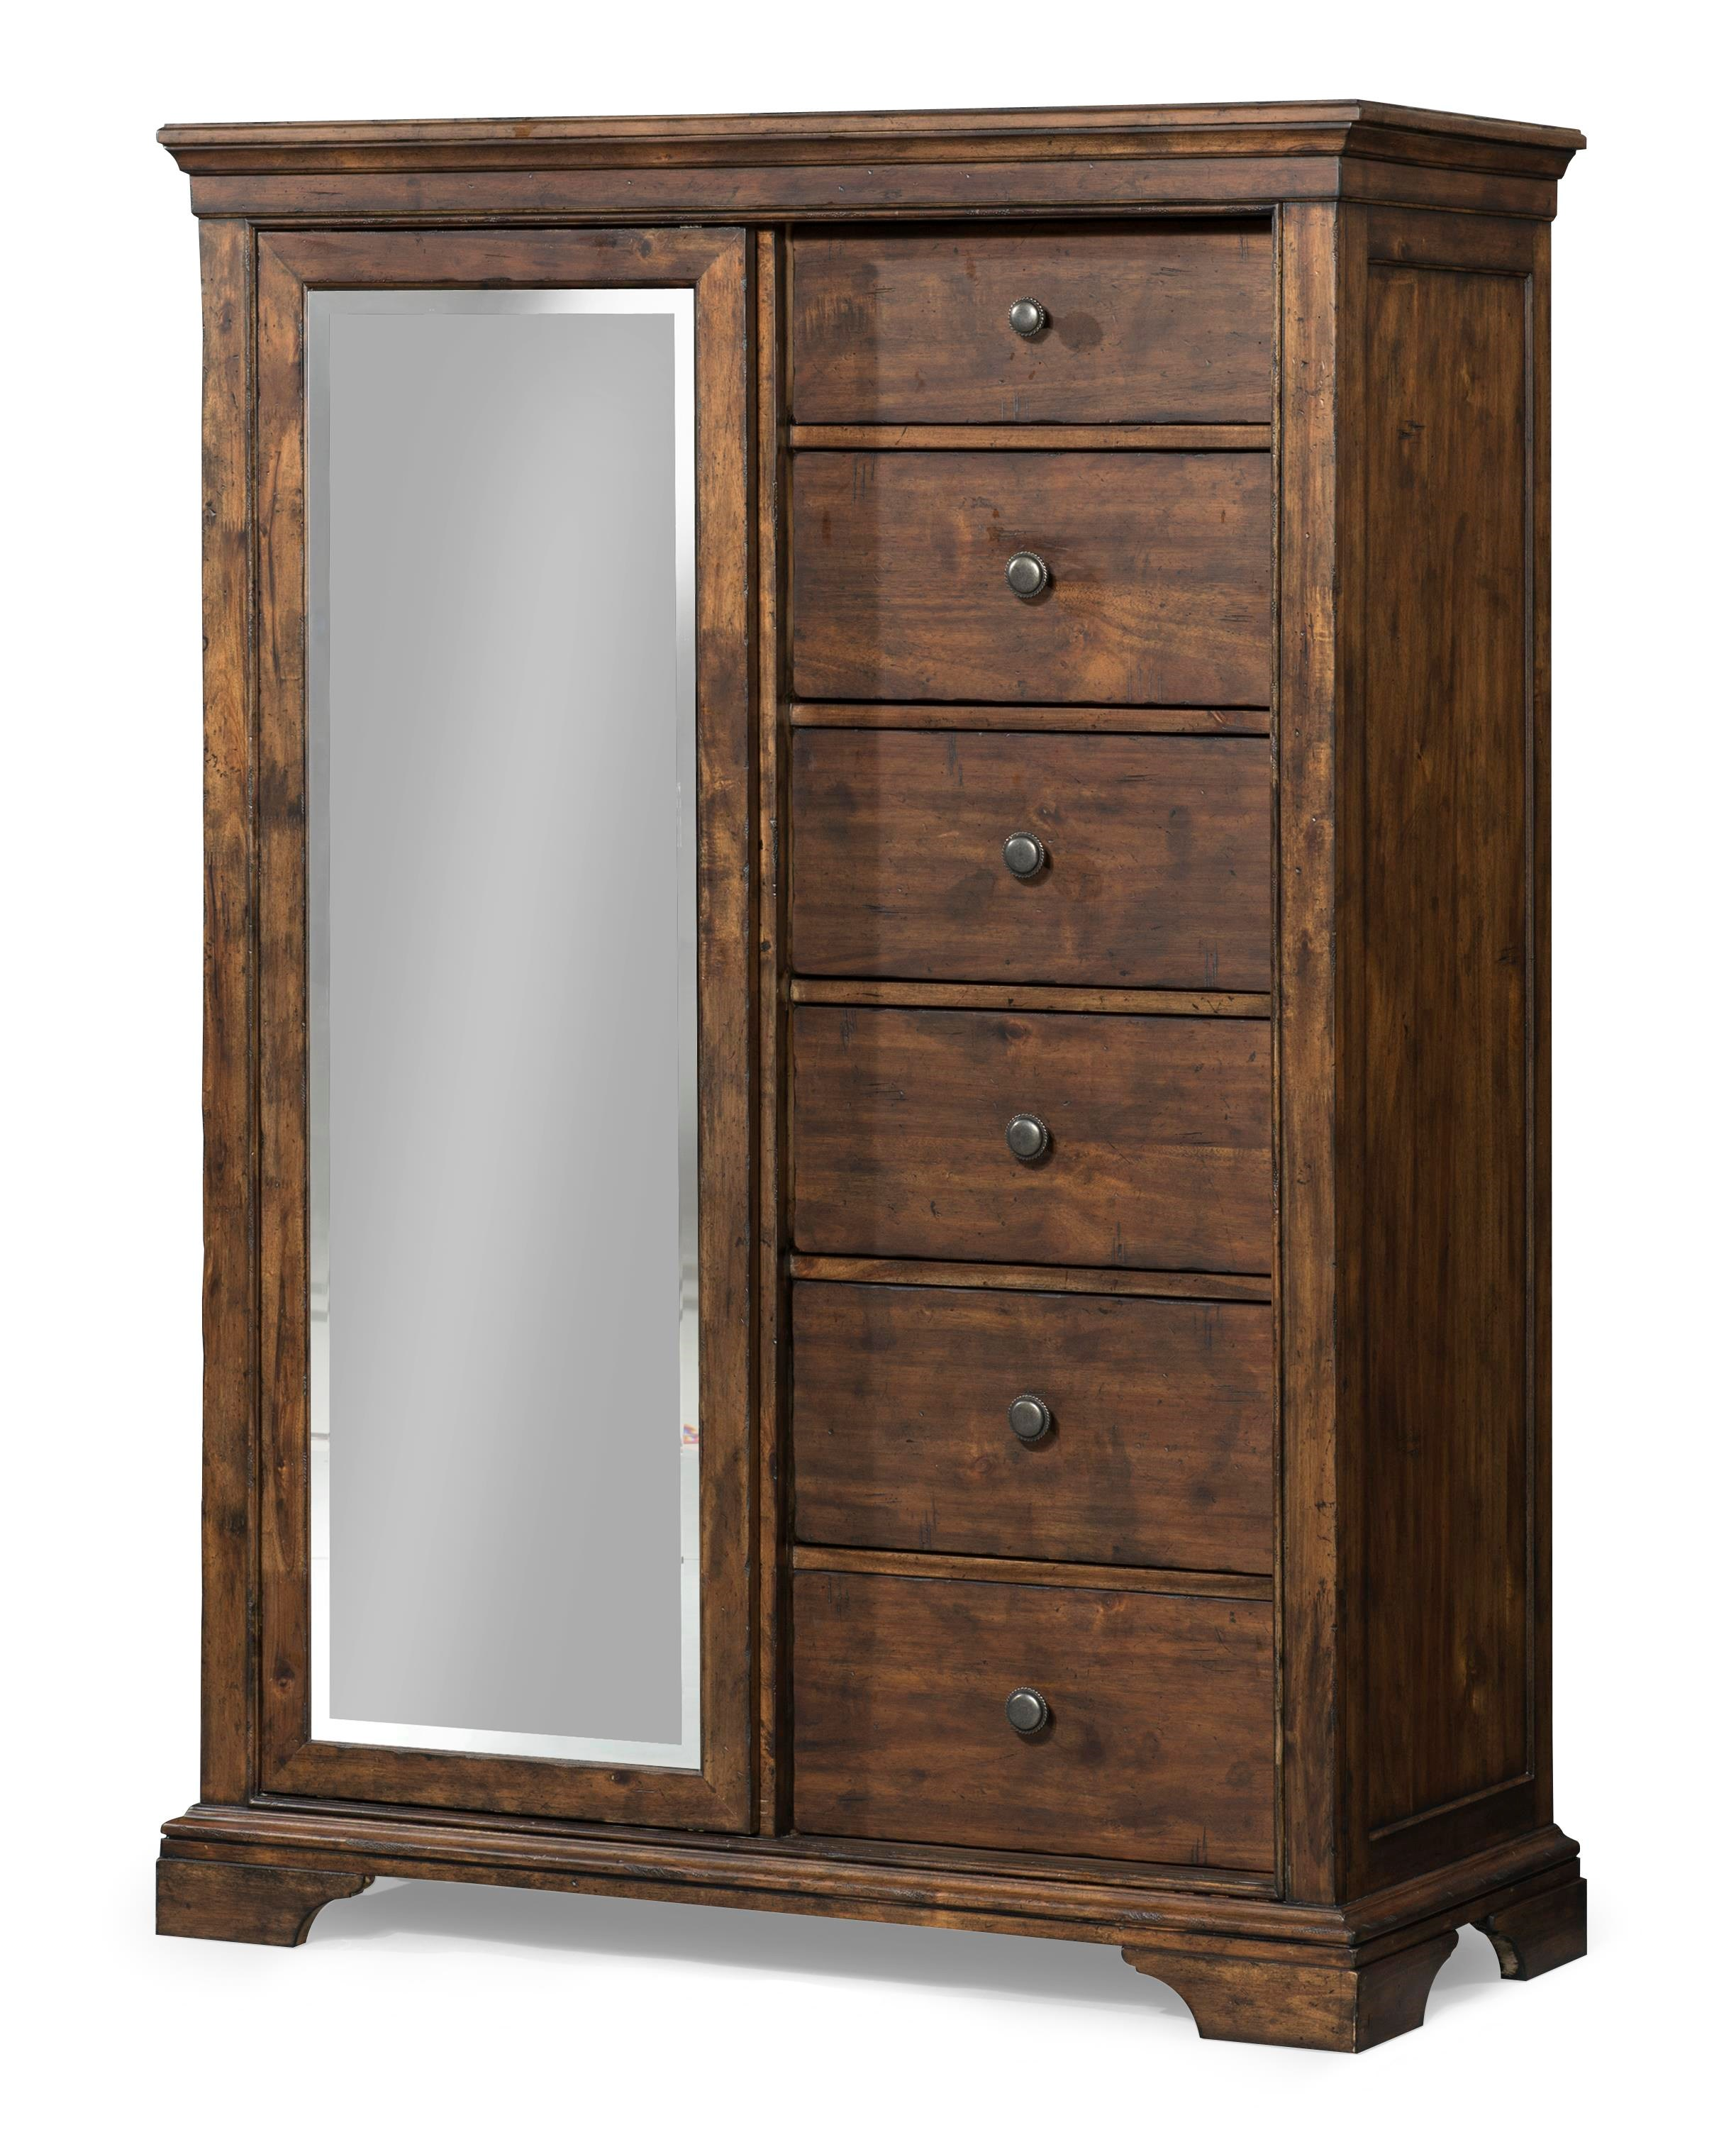 ... By Klaussner Trisha Yearwood Home Tulsa Sliding Door Chest With Mirror Old  Brick Furniture Door Chests With Furniture Stores In Schenectady Ny